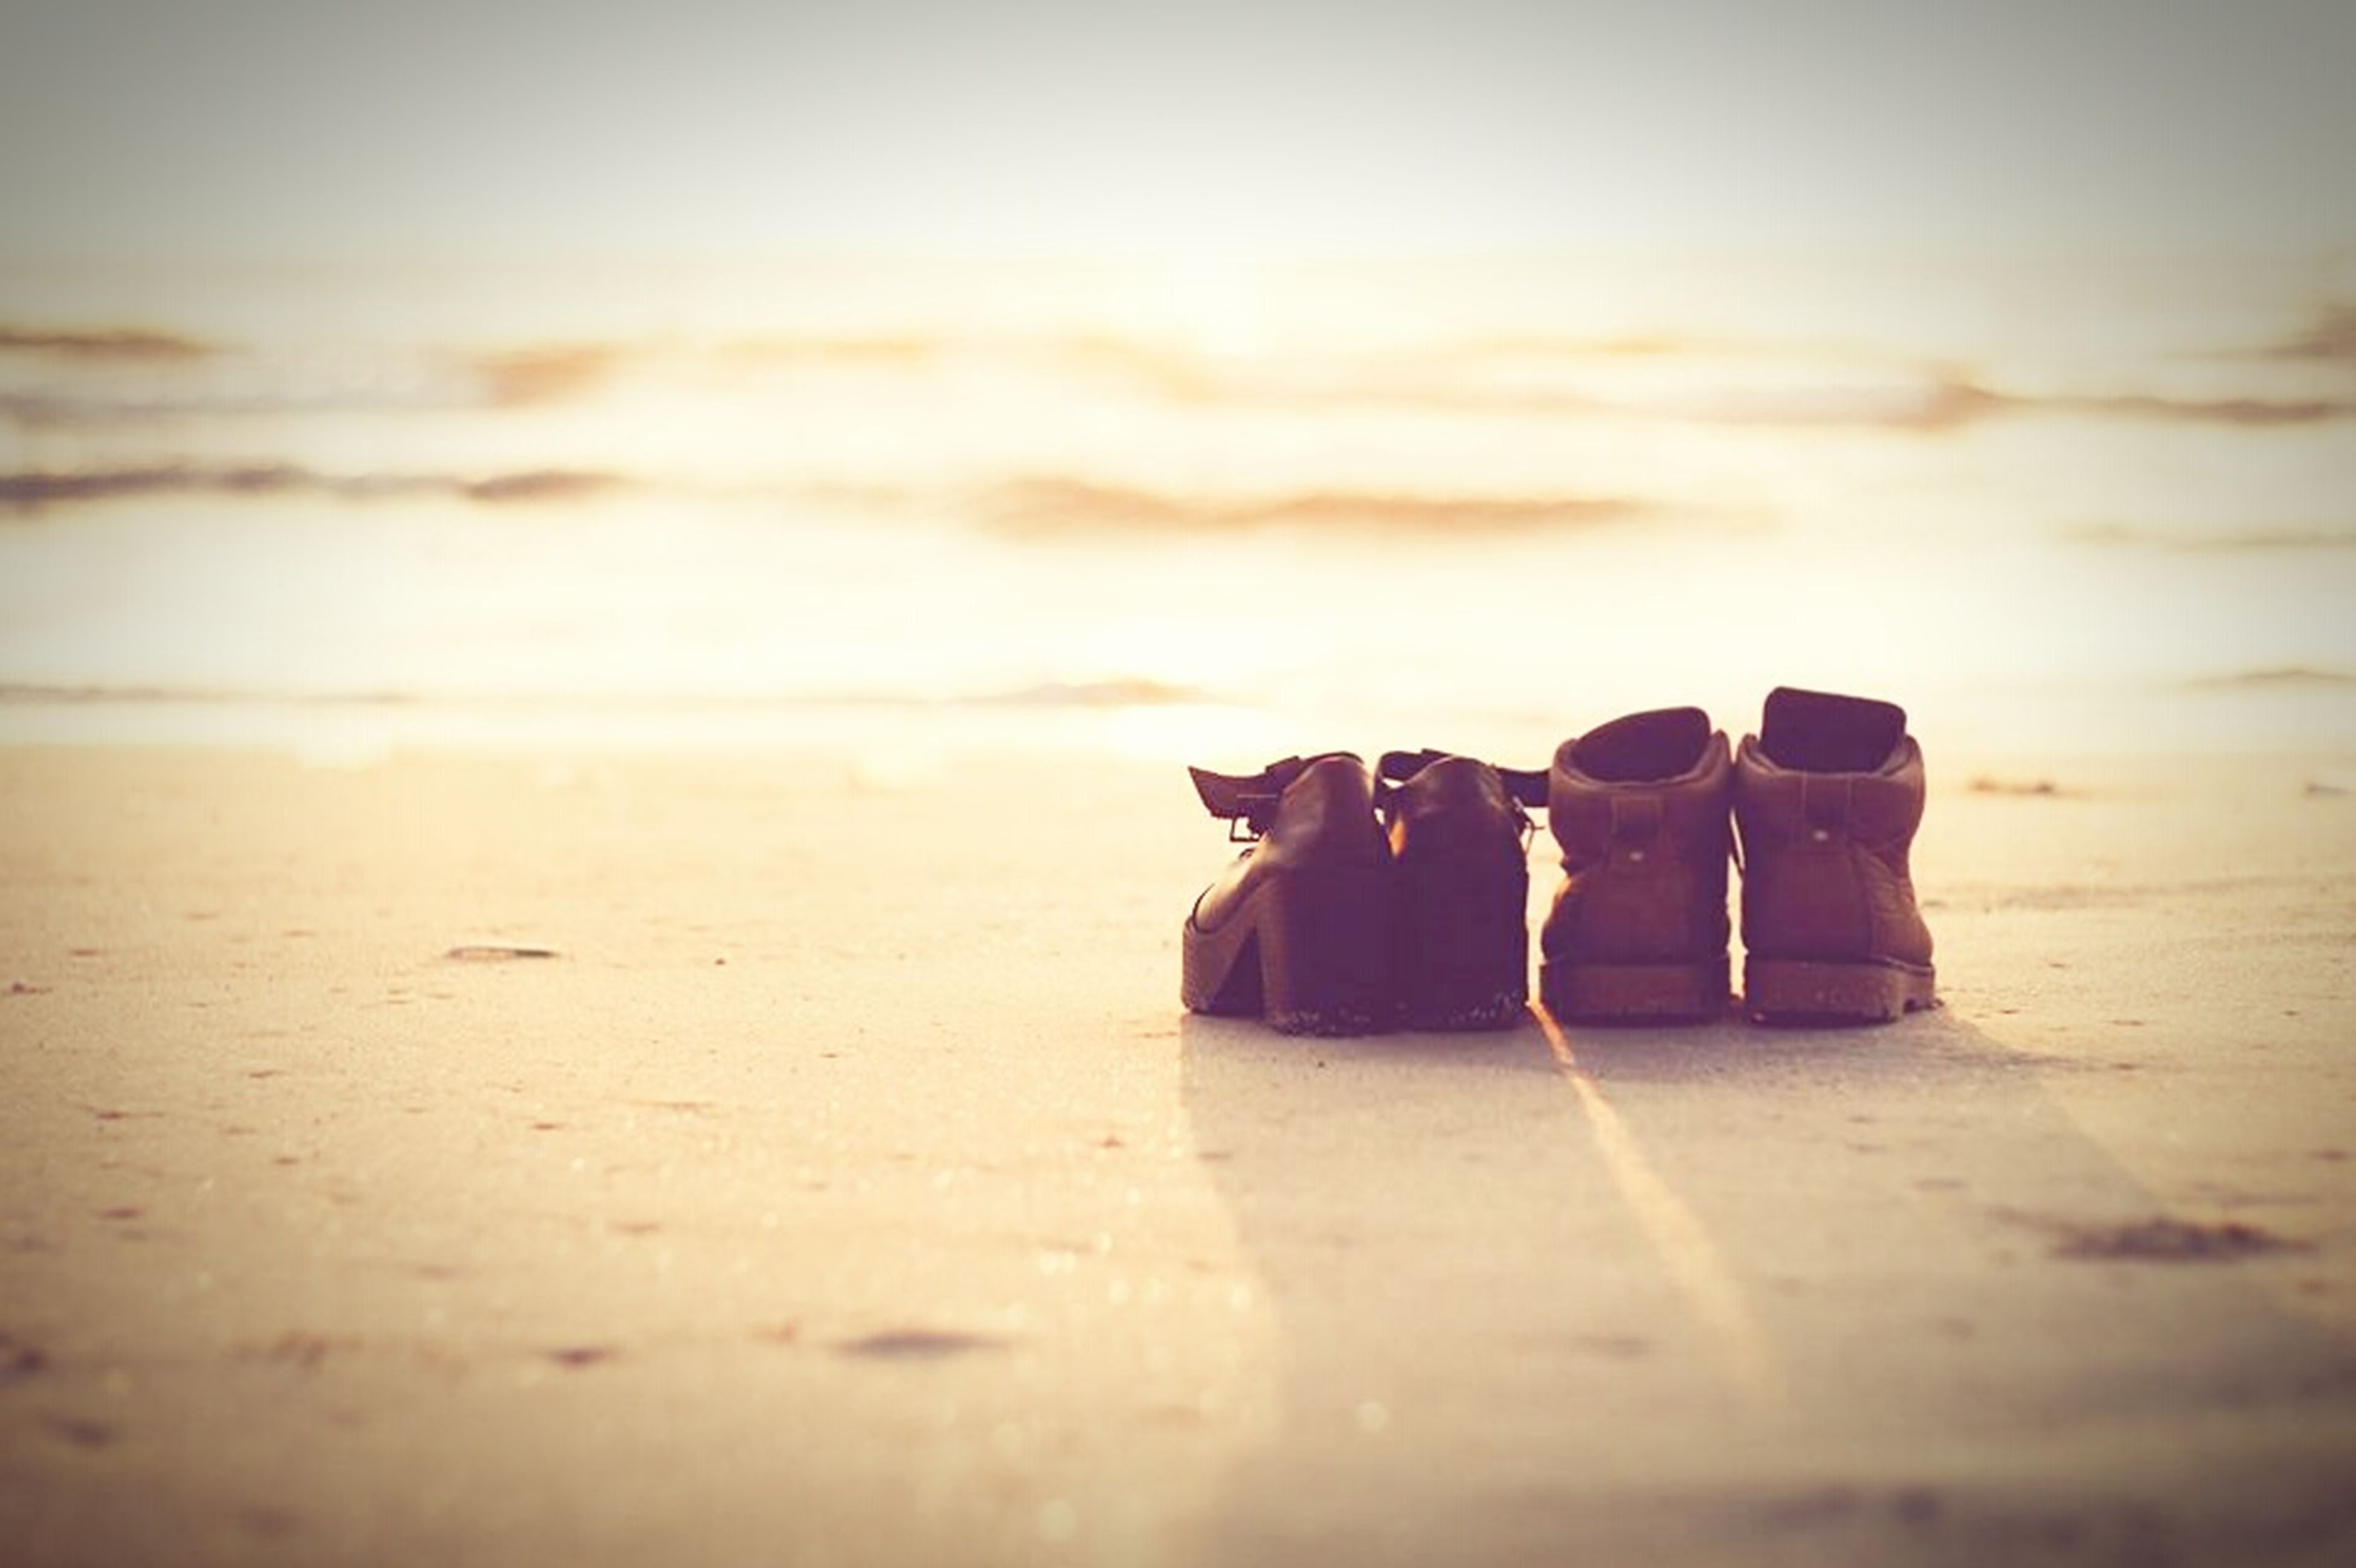 beach, sand, selective focus, in a row, sea, focus on foreground, still life, shore, surface level, tranquility, stack, absence, sky, close-up, side by side, table, no people, day, large group of objects, nature